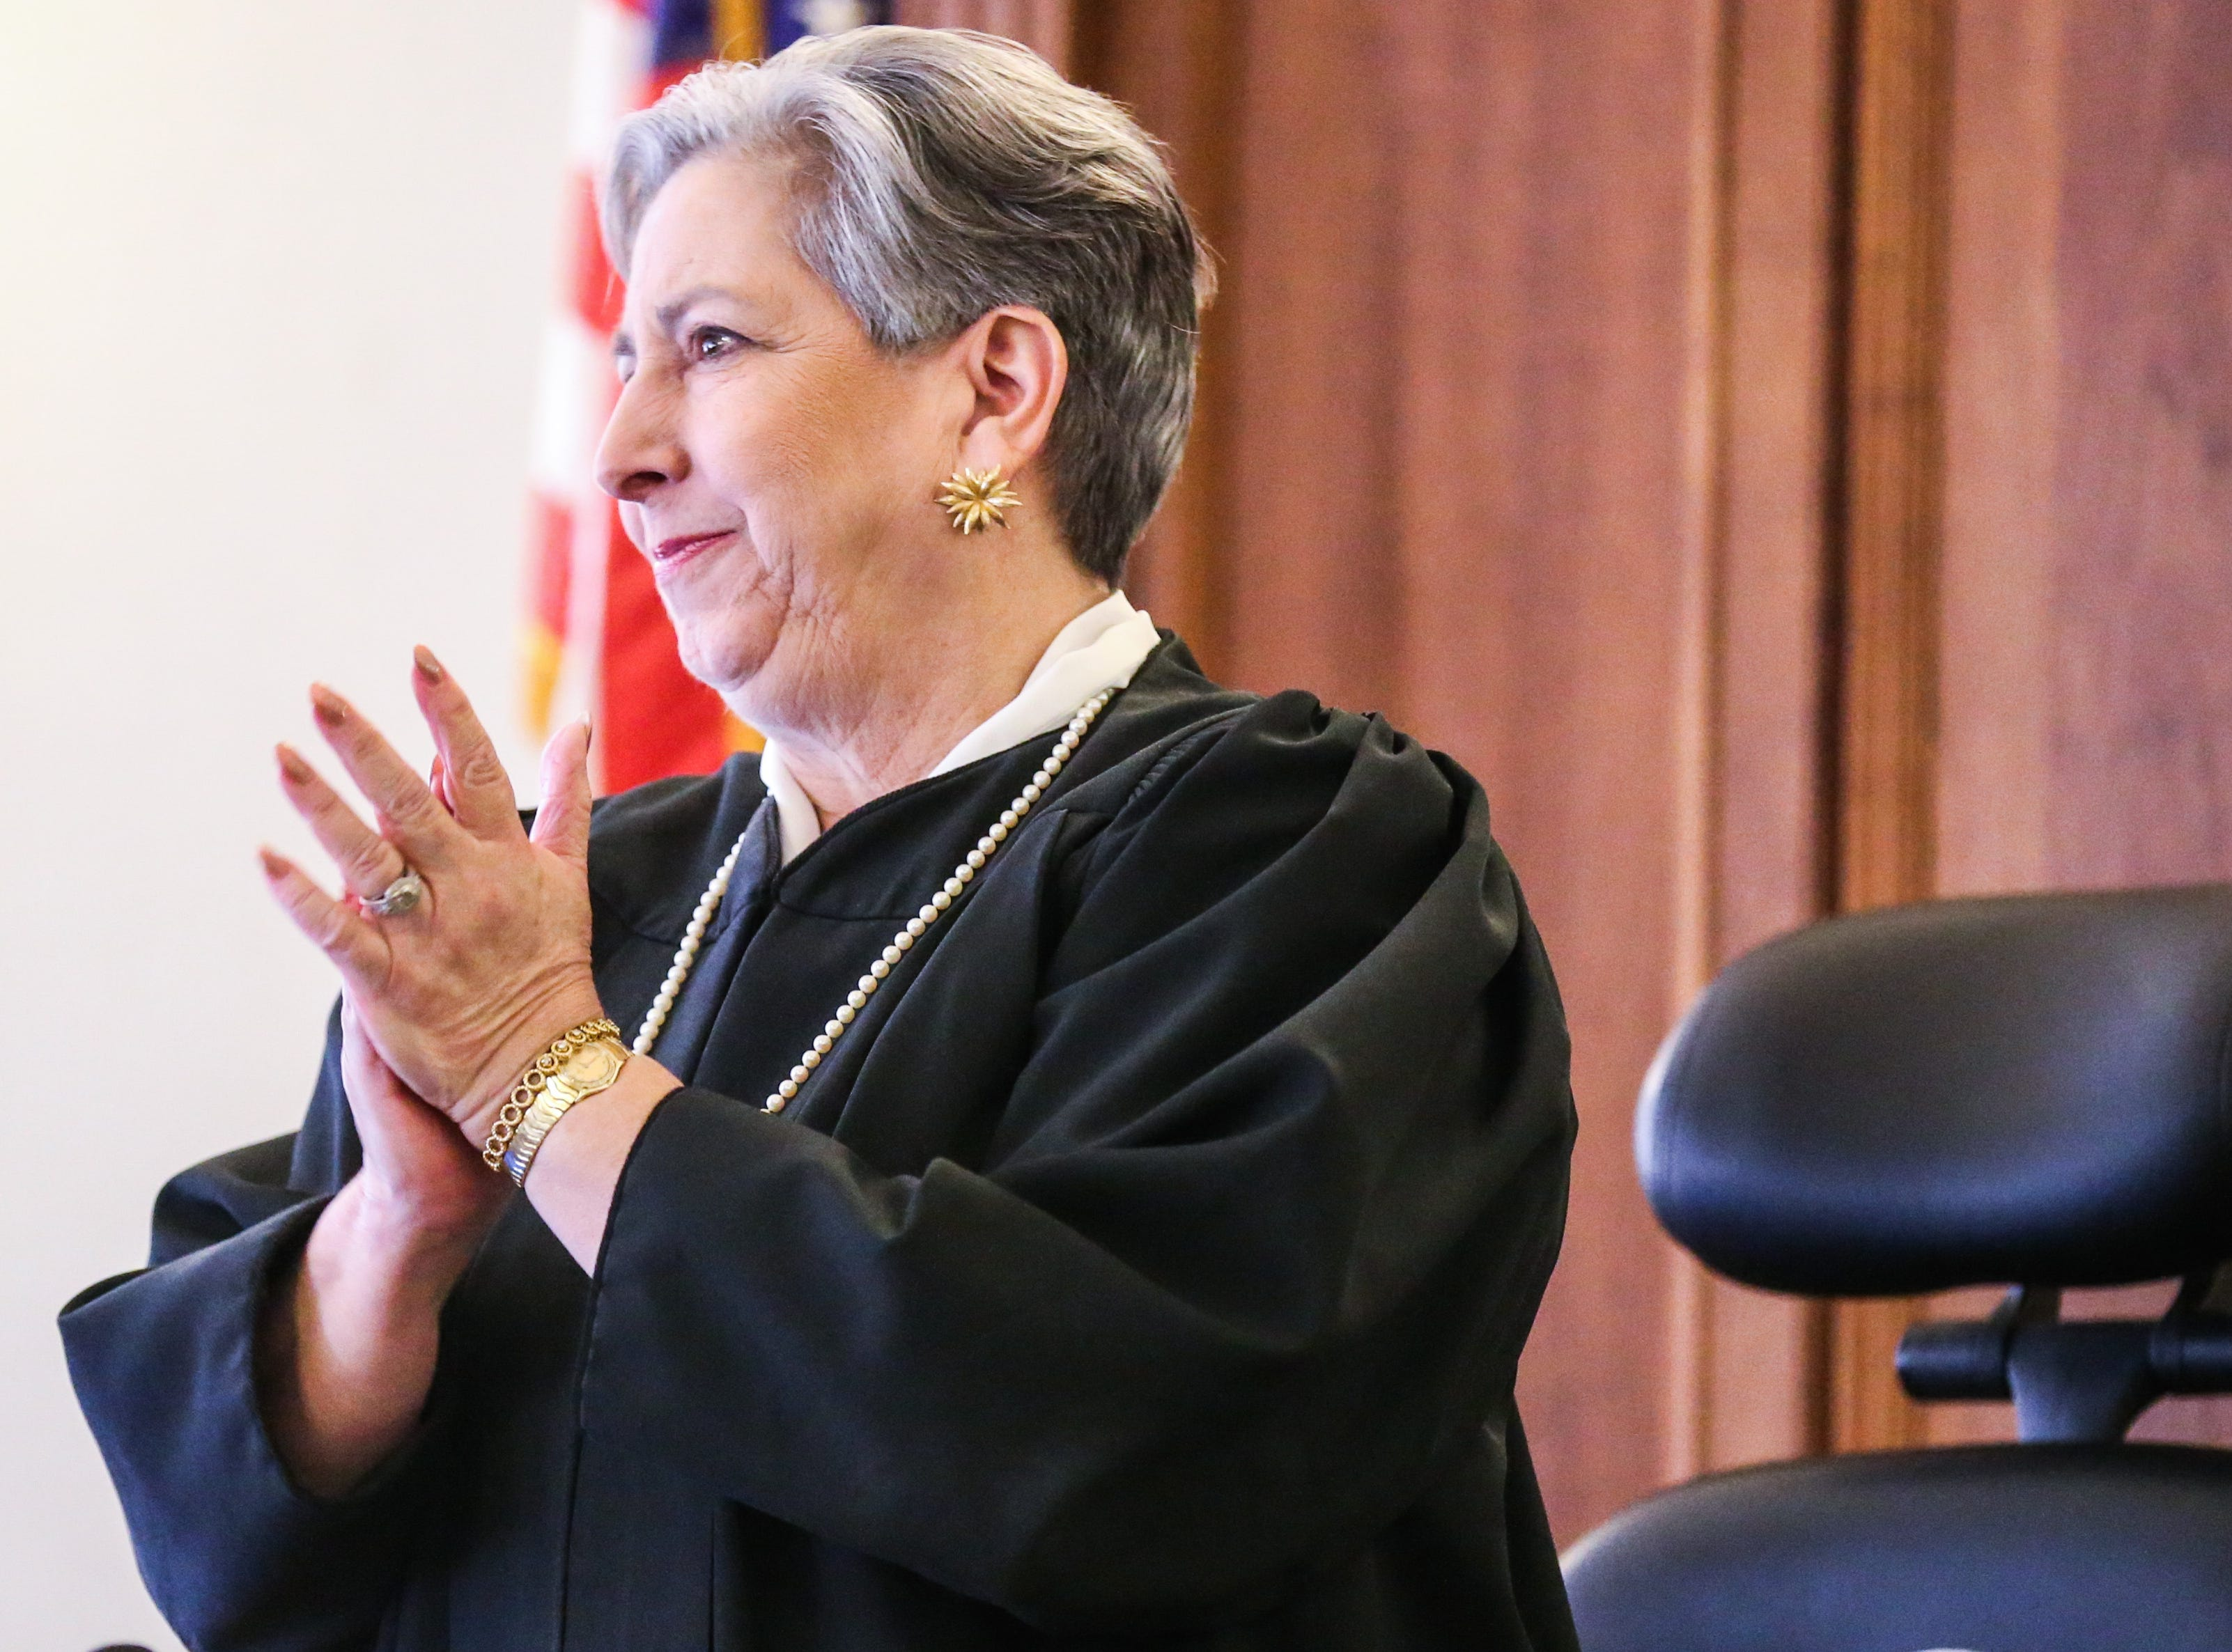 Justice Marilyn Aboussie stands to applause Carmen Dusek at the concluding on the swearing in ceremony Friday, Dec. 14, 2018, at Tom Green Courthouse.